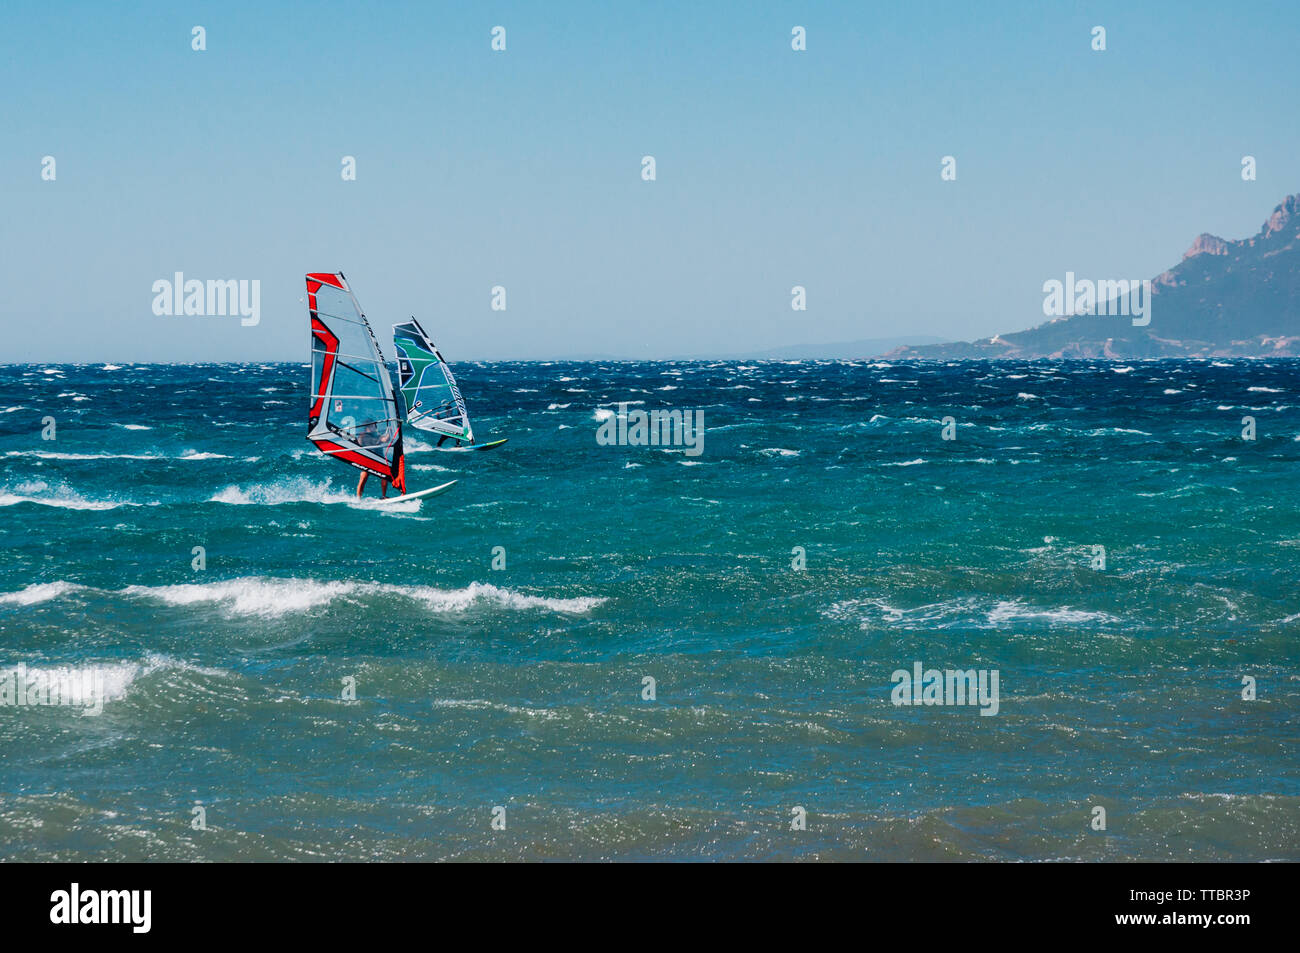 Windsurfing in the Bay of Cannes, France - Stock Image